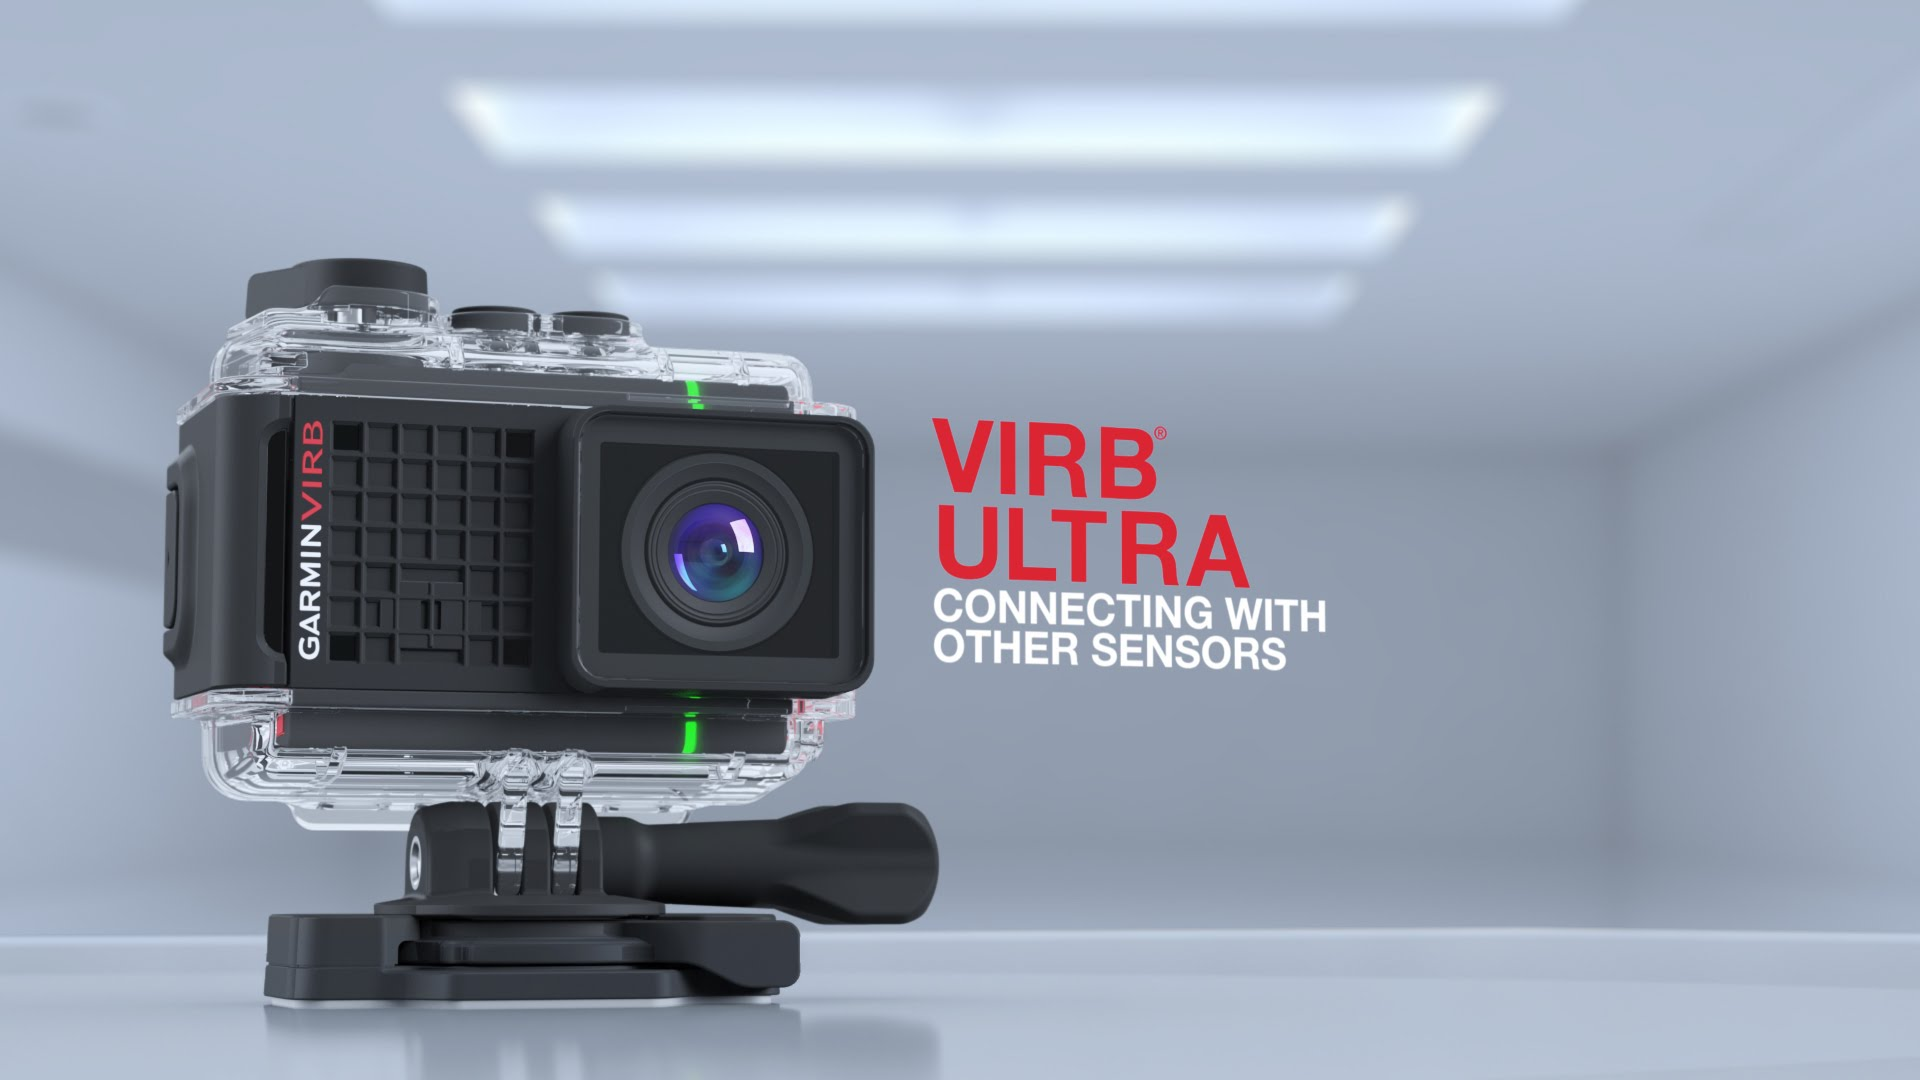 VIRB Ultra: Connecting with Other Sensors